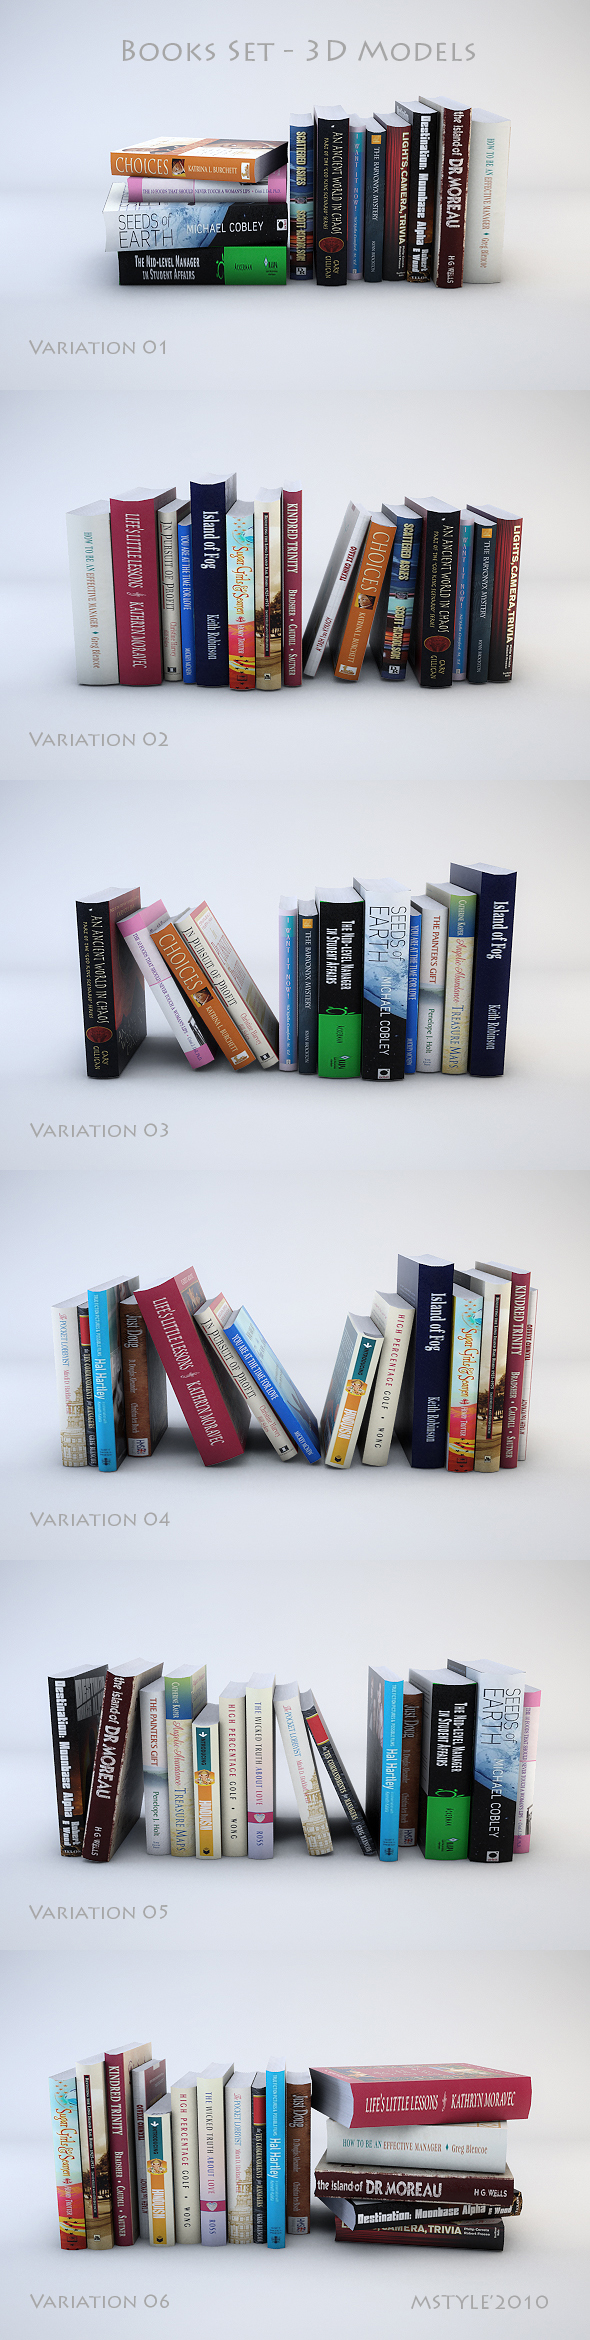 3DOcean Books Set 3D Models 117103